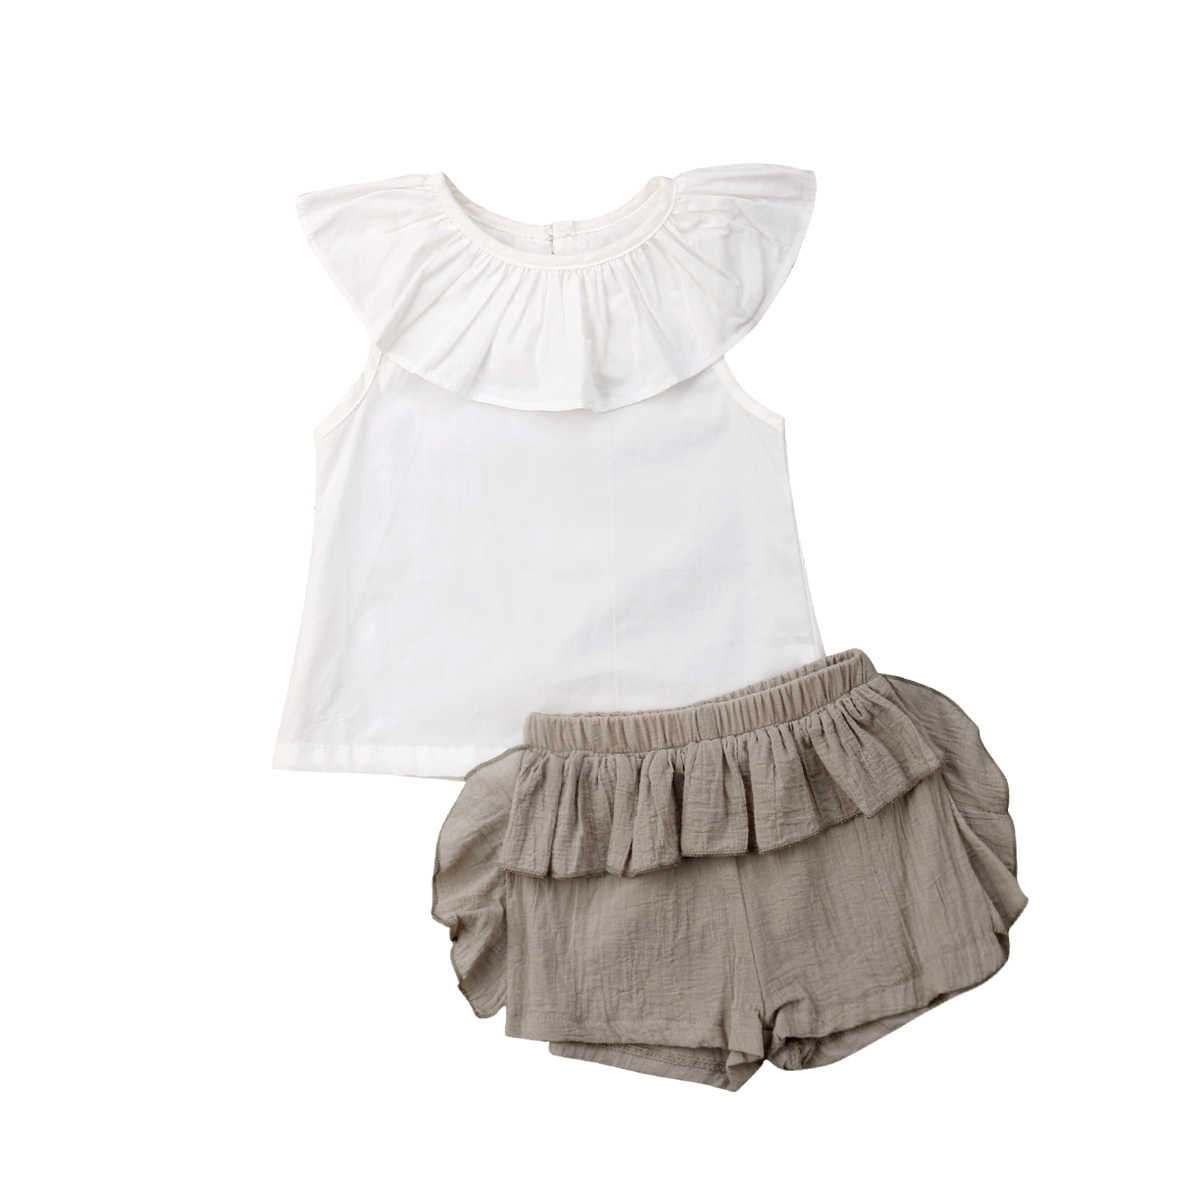 2019 Canis Summer 2Pcs Newborn Kid Baby Girl Clothes Collar White Ruffle  Tops Shorts Pants Outfit e523c119edc9